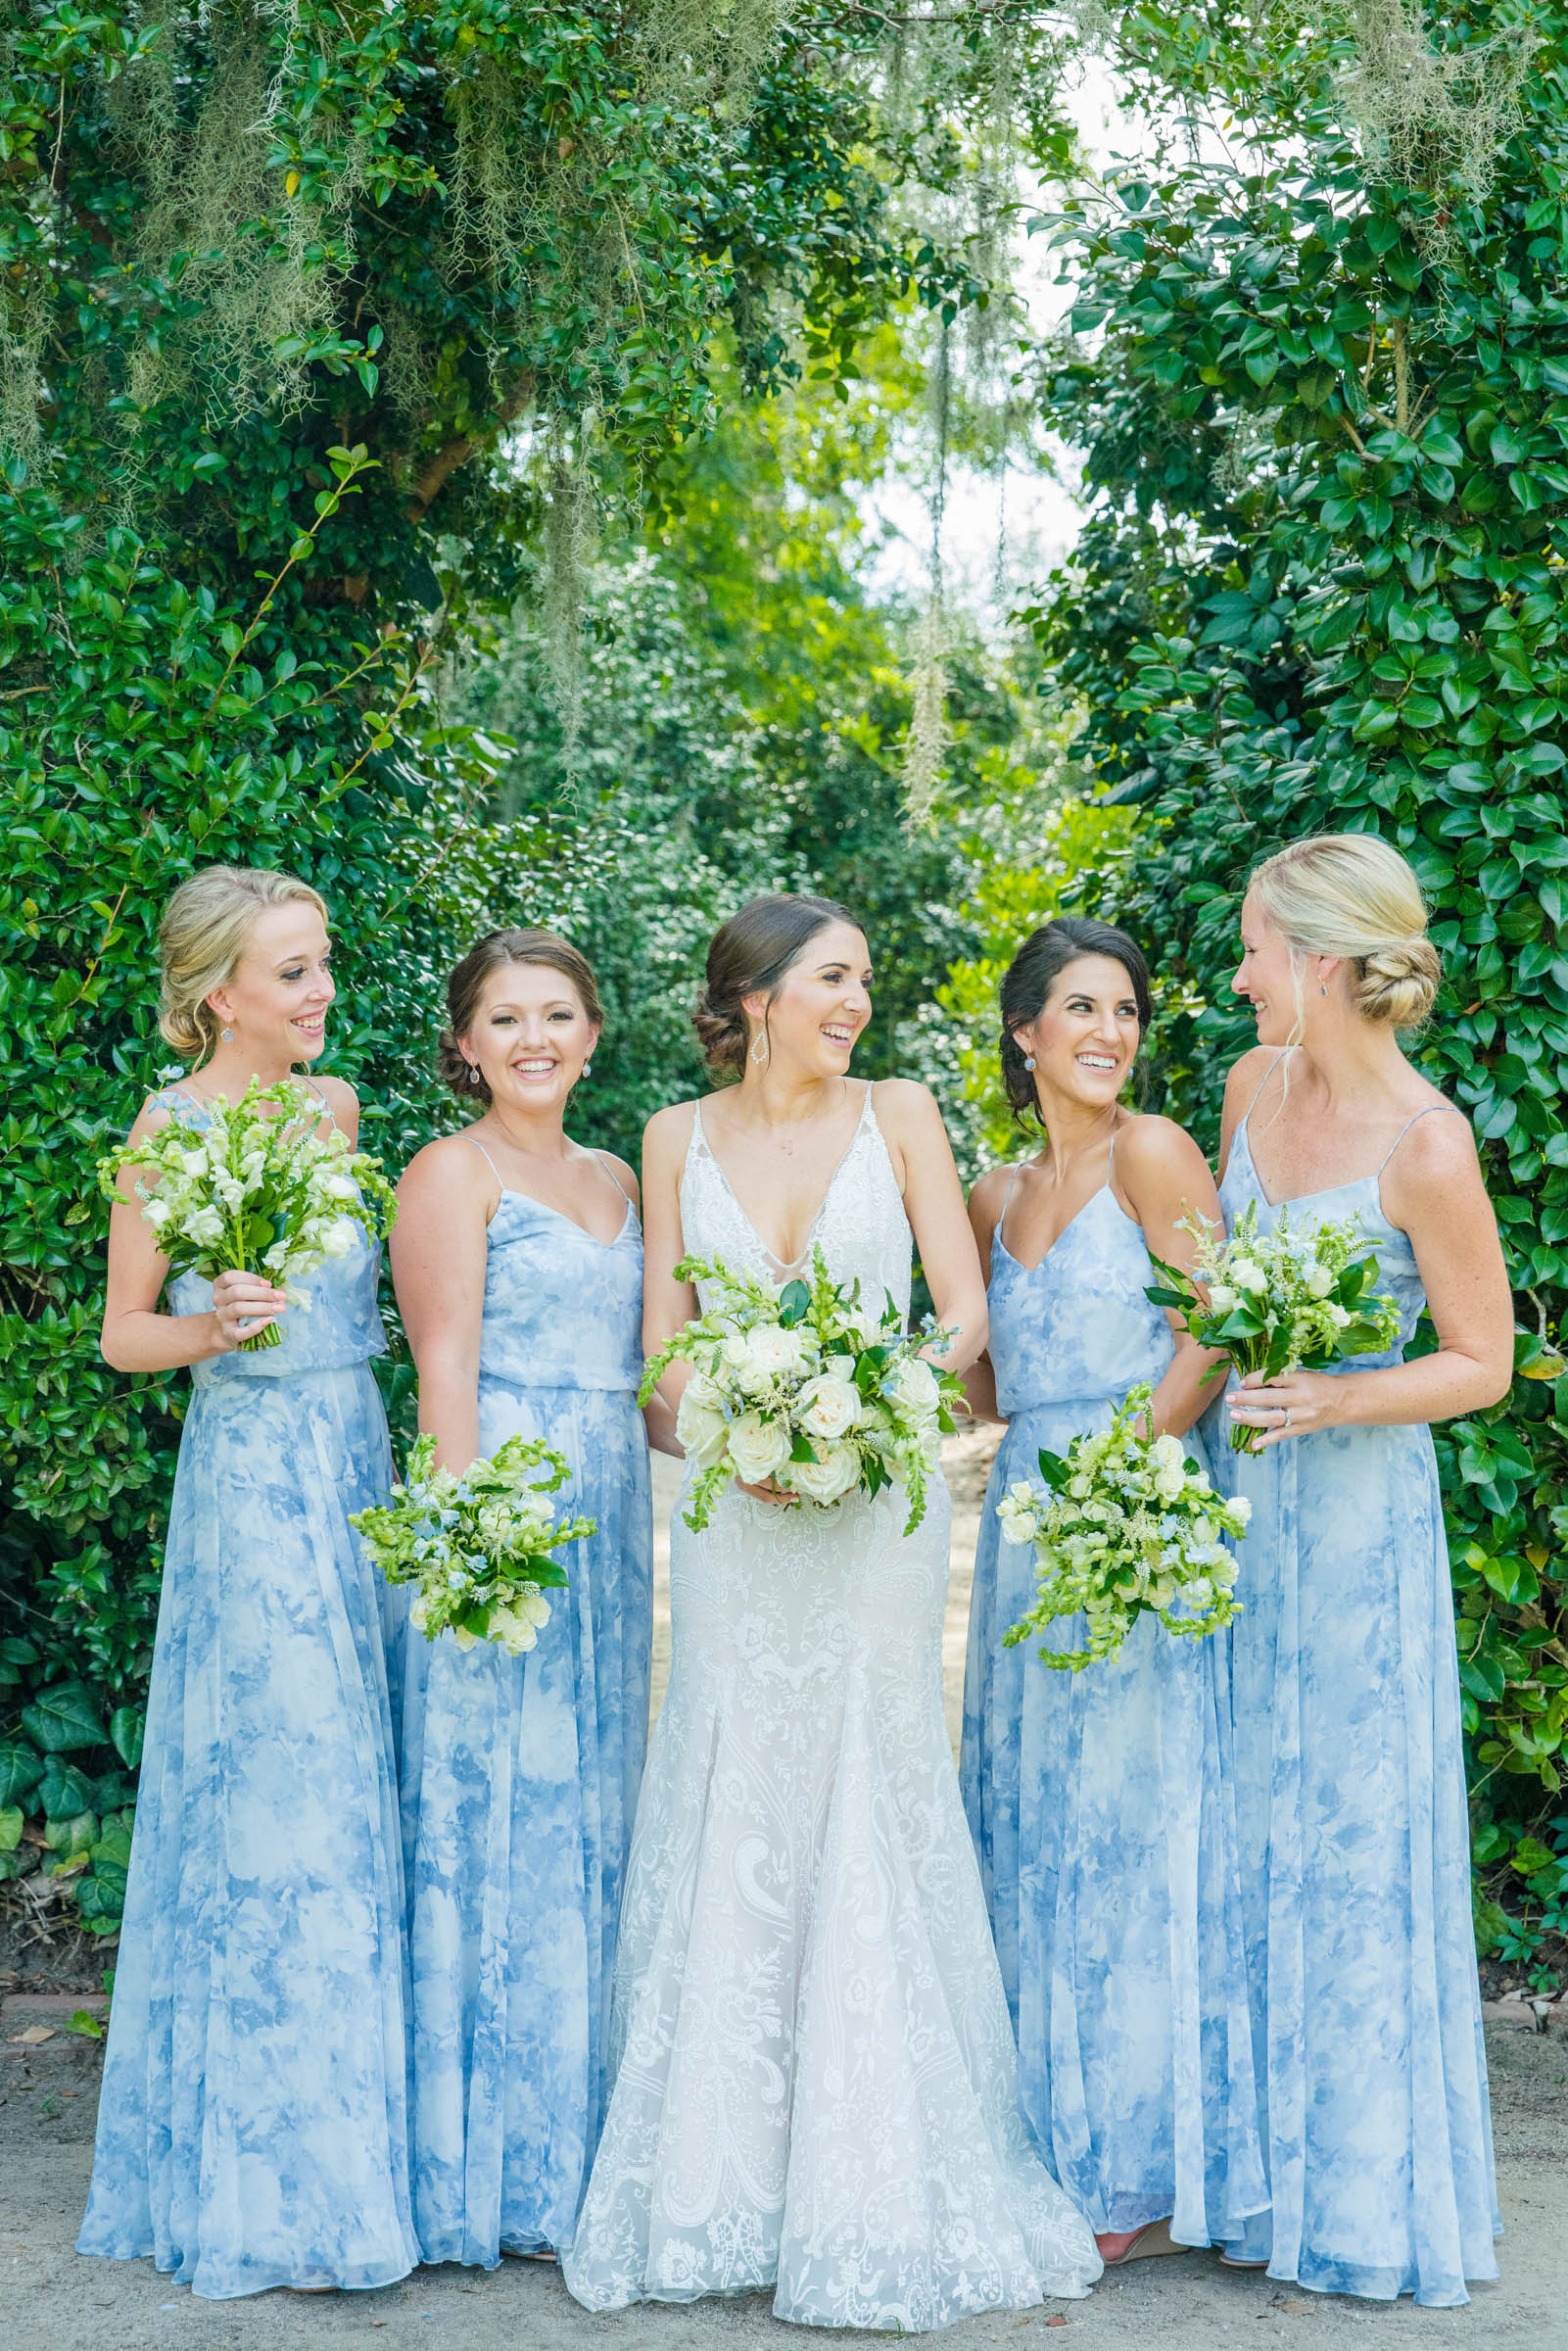 Bridal party with bouquets - photo by Dana Cubbage Weddings